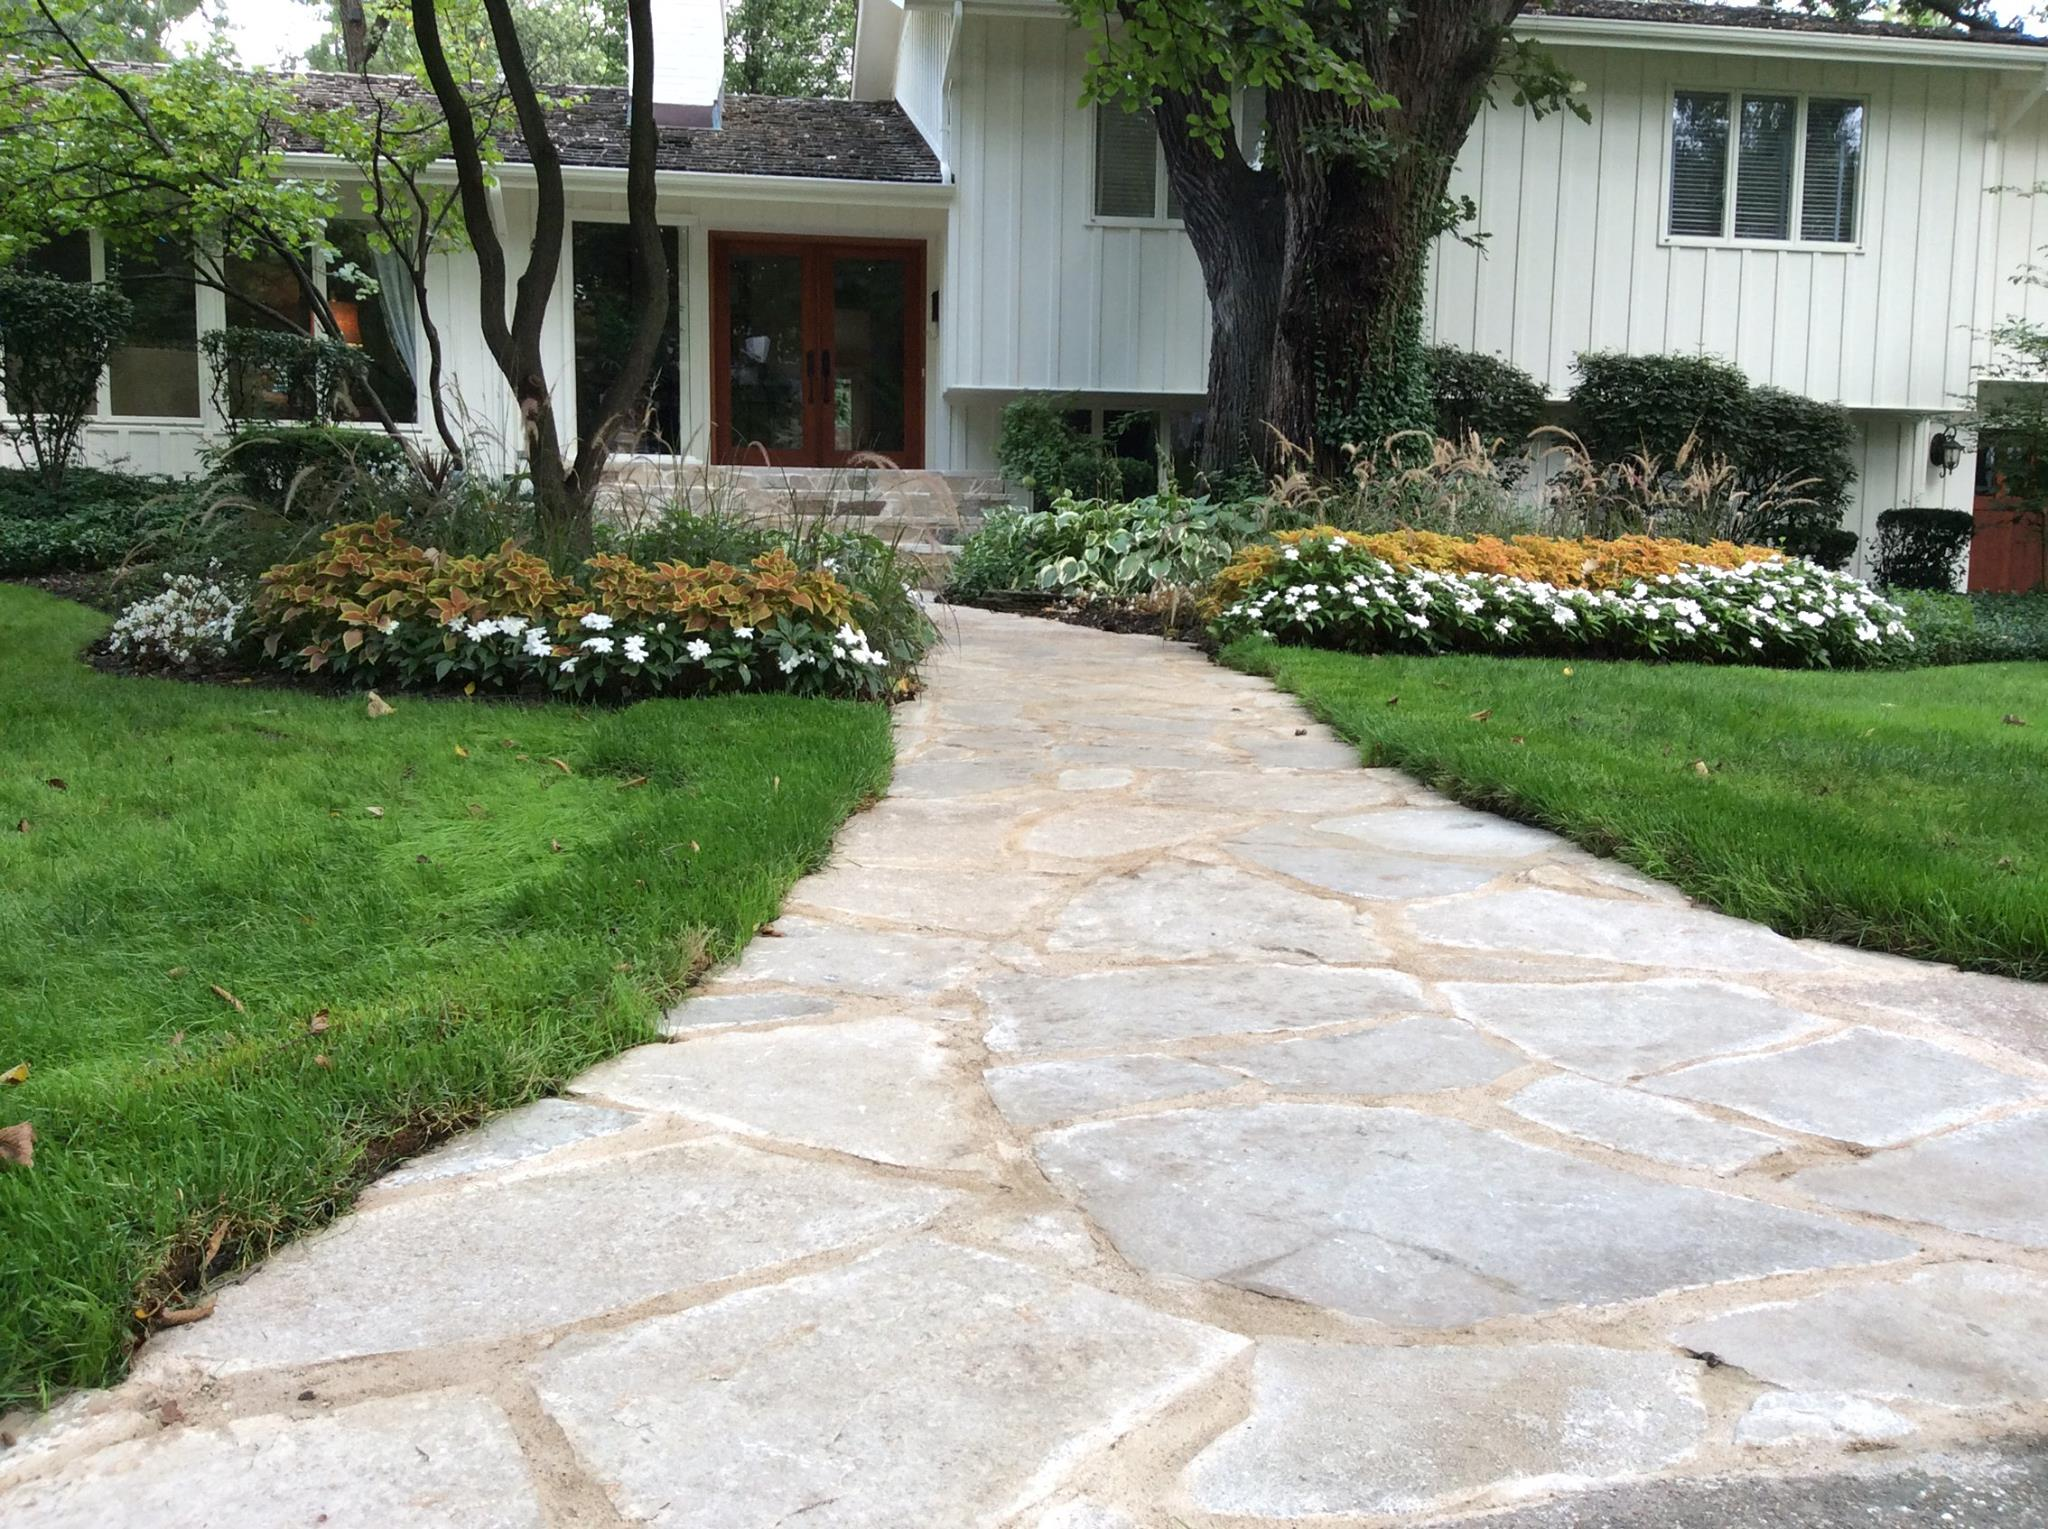 Landscaping company with top brick paving service in Elmhurst, IL